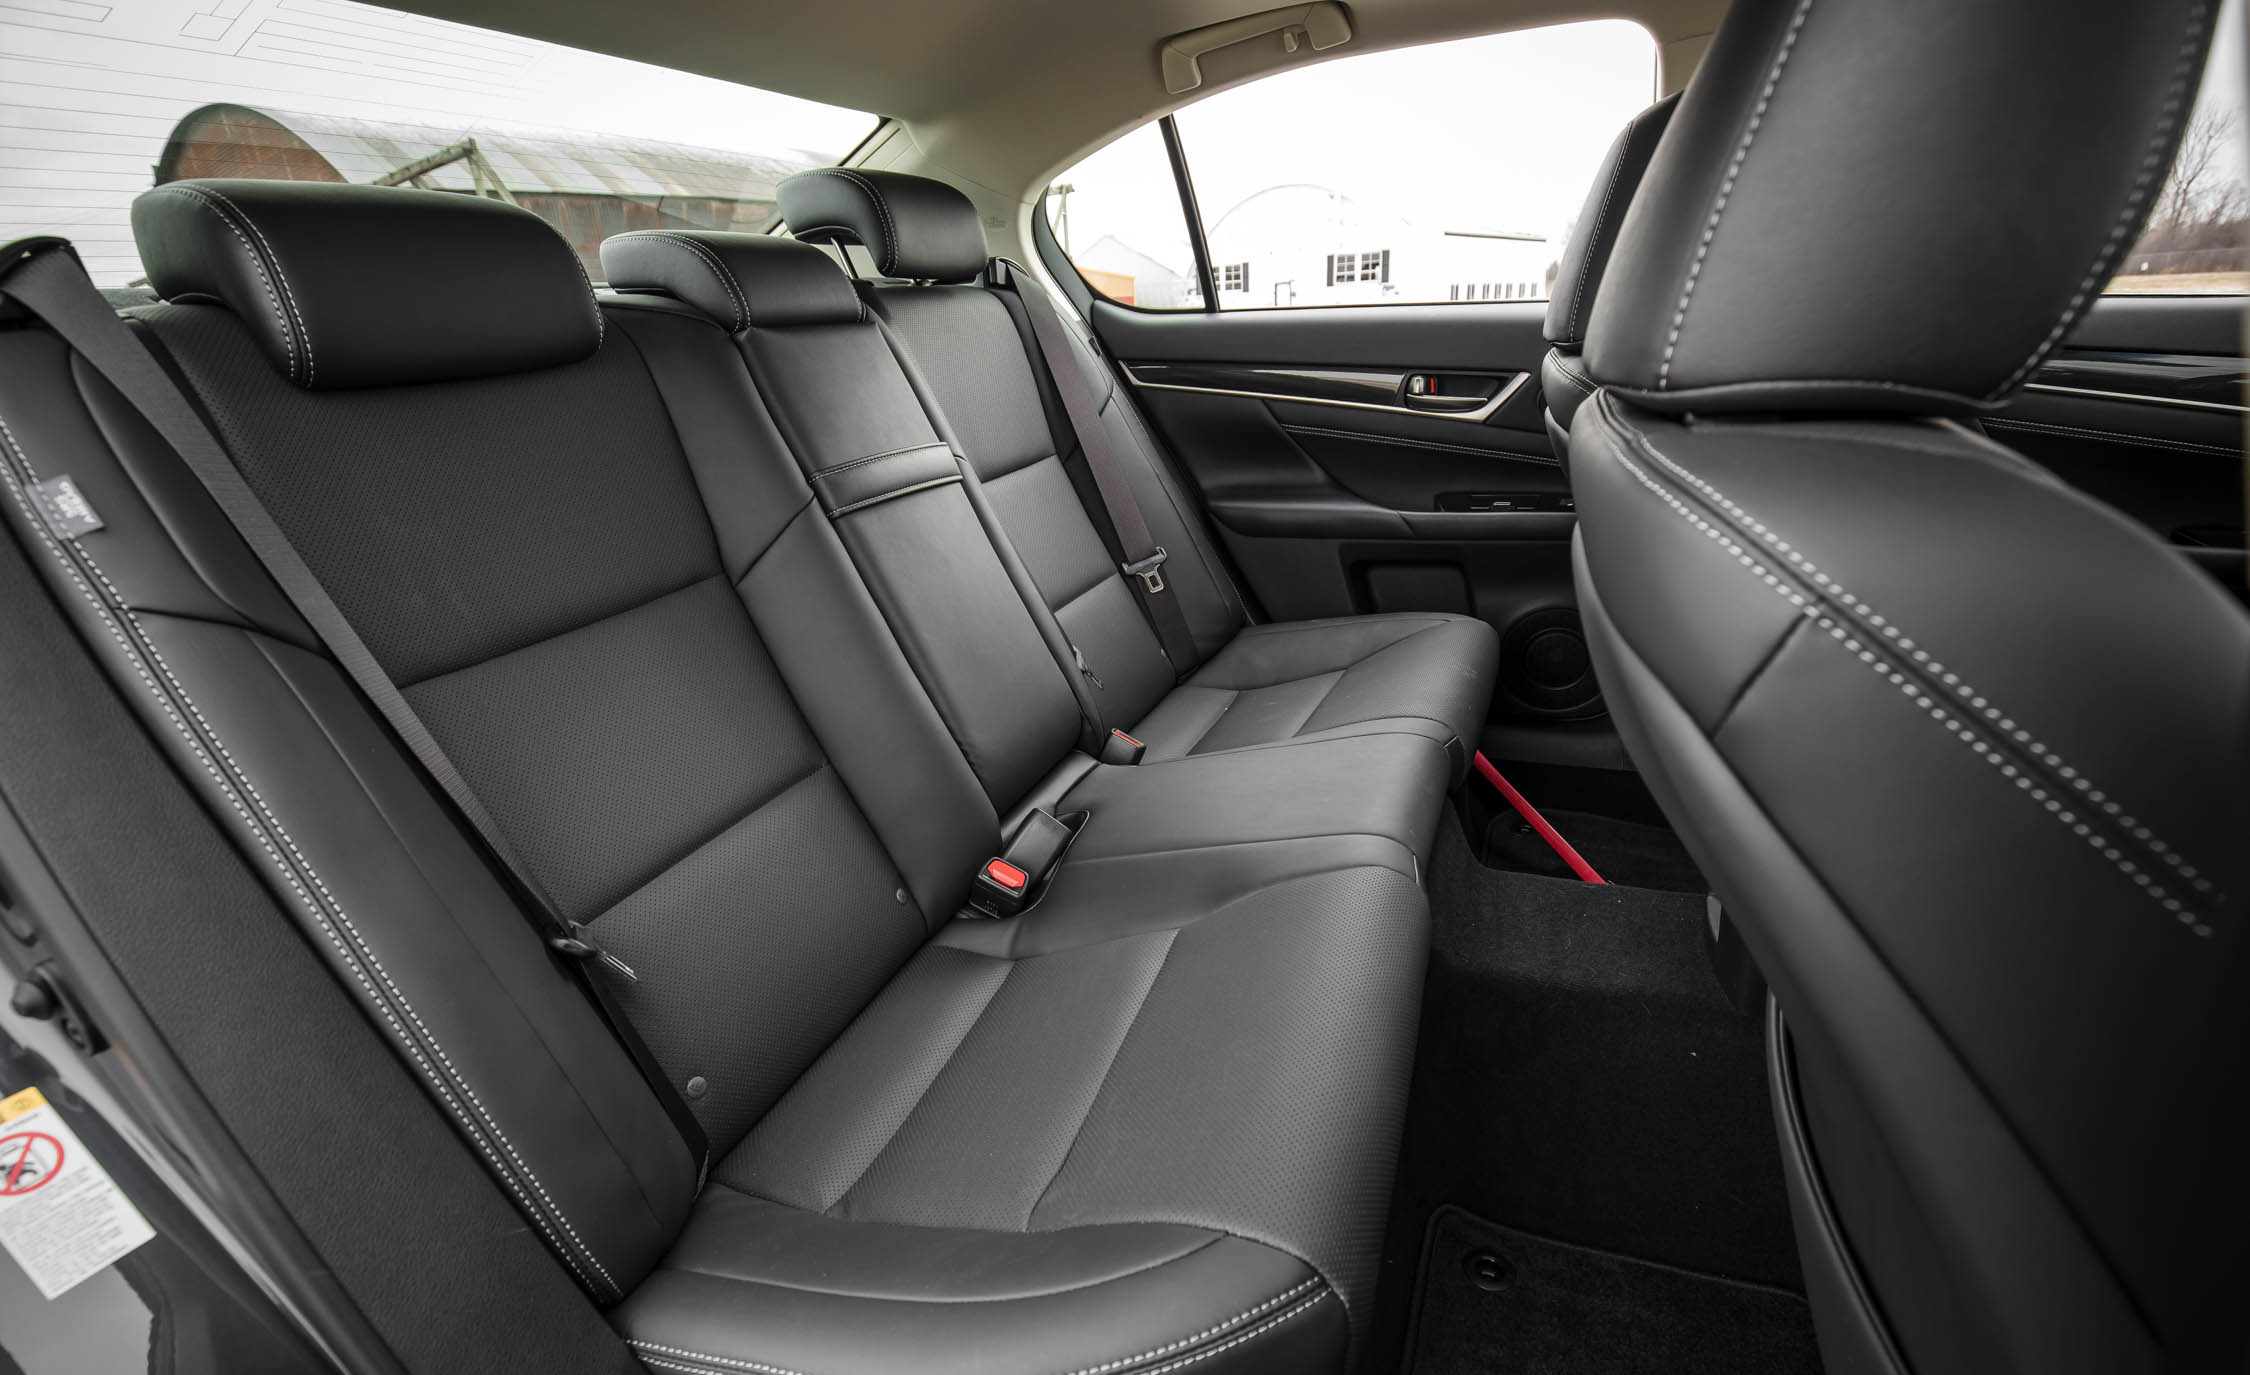 2017 Lexus GS200t Interior Seats Rear (Photo 21 of 26)